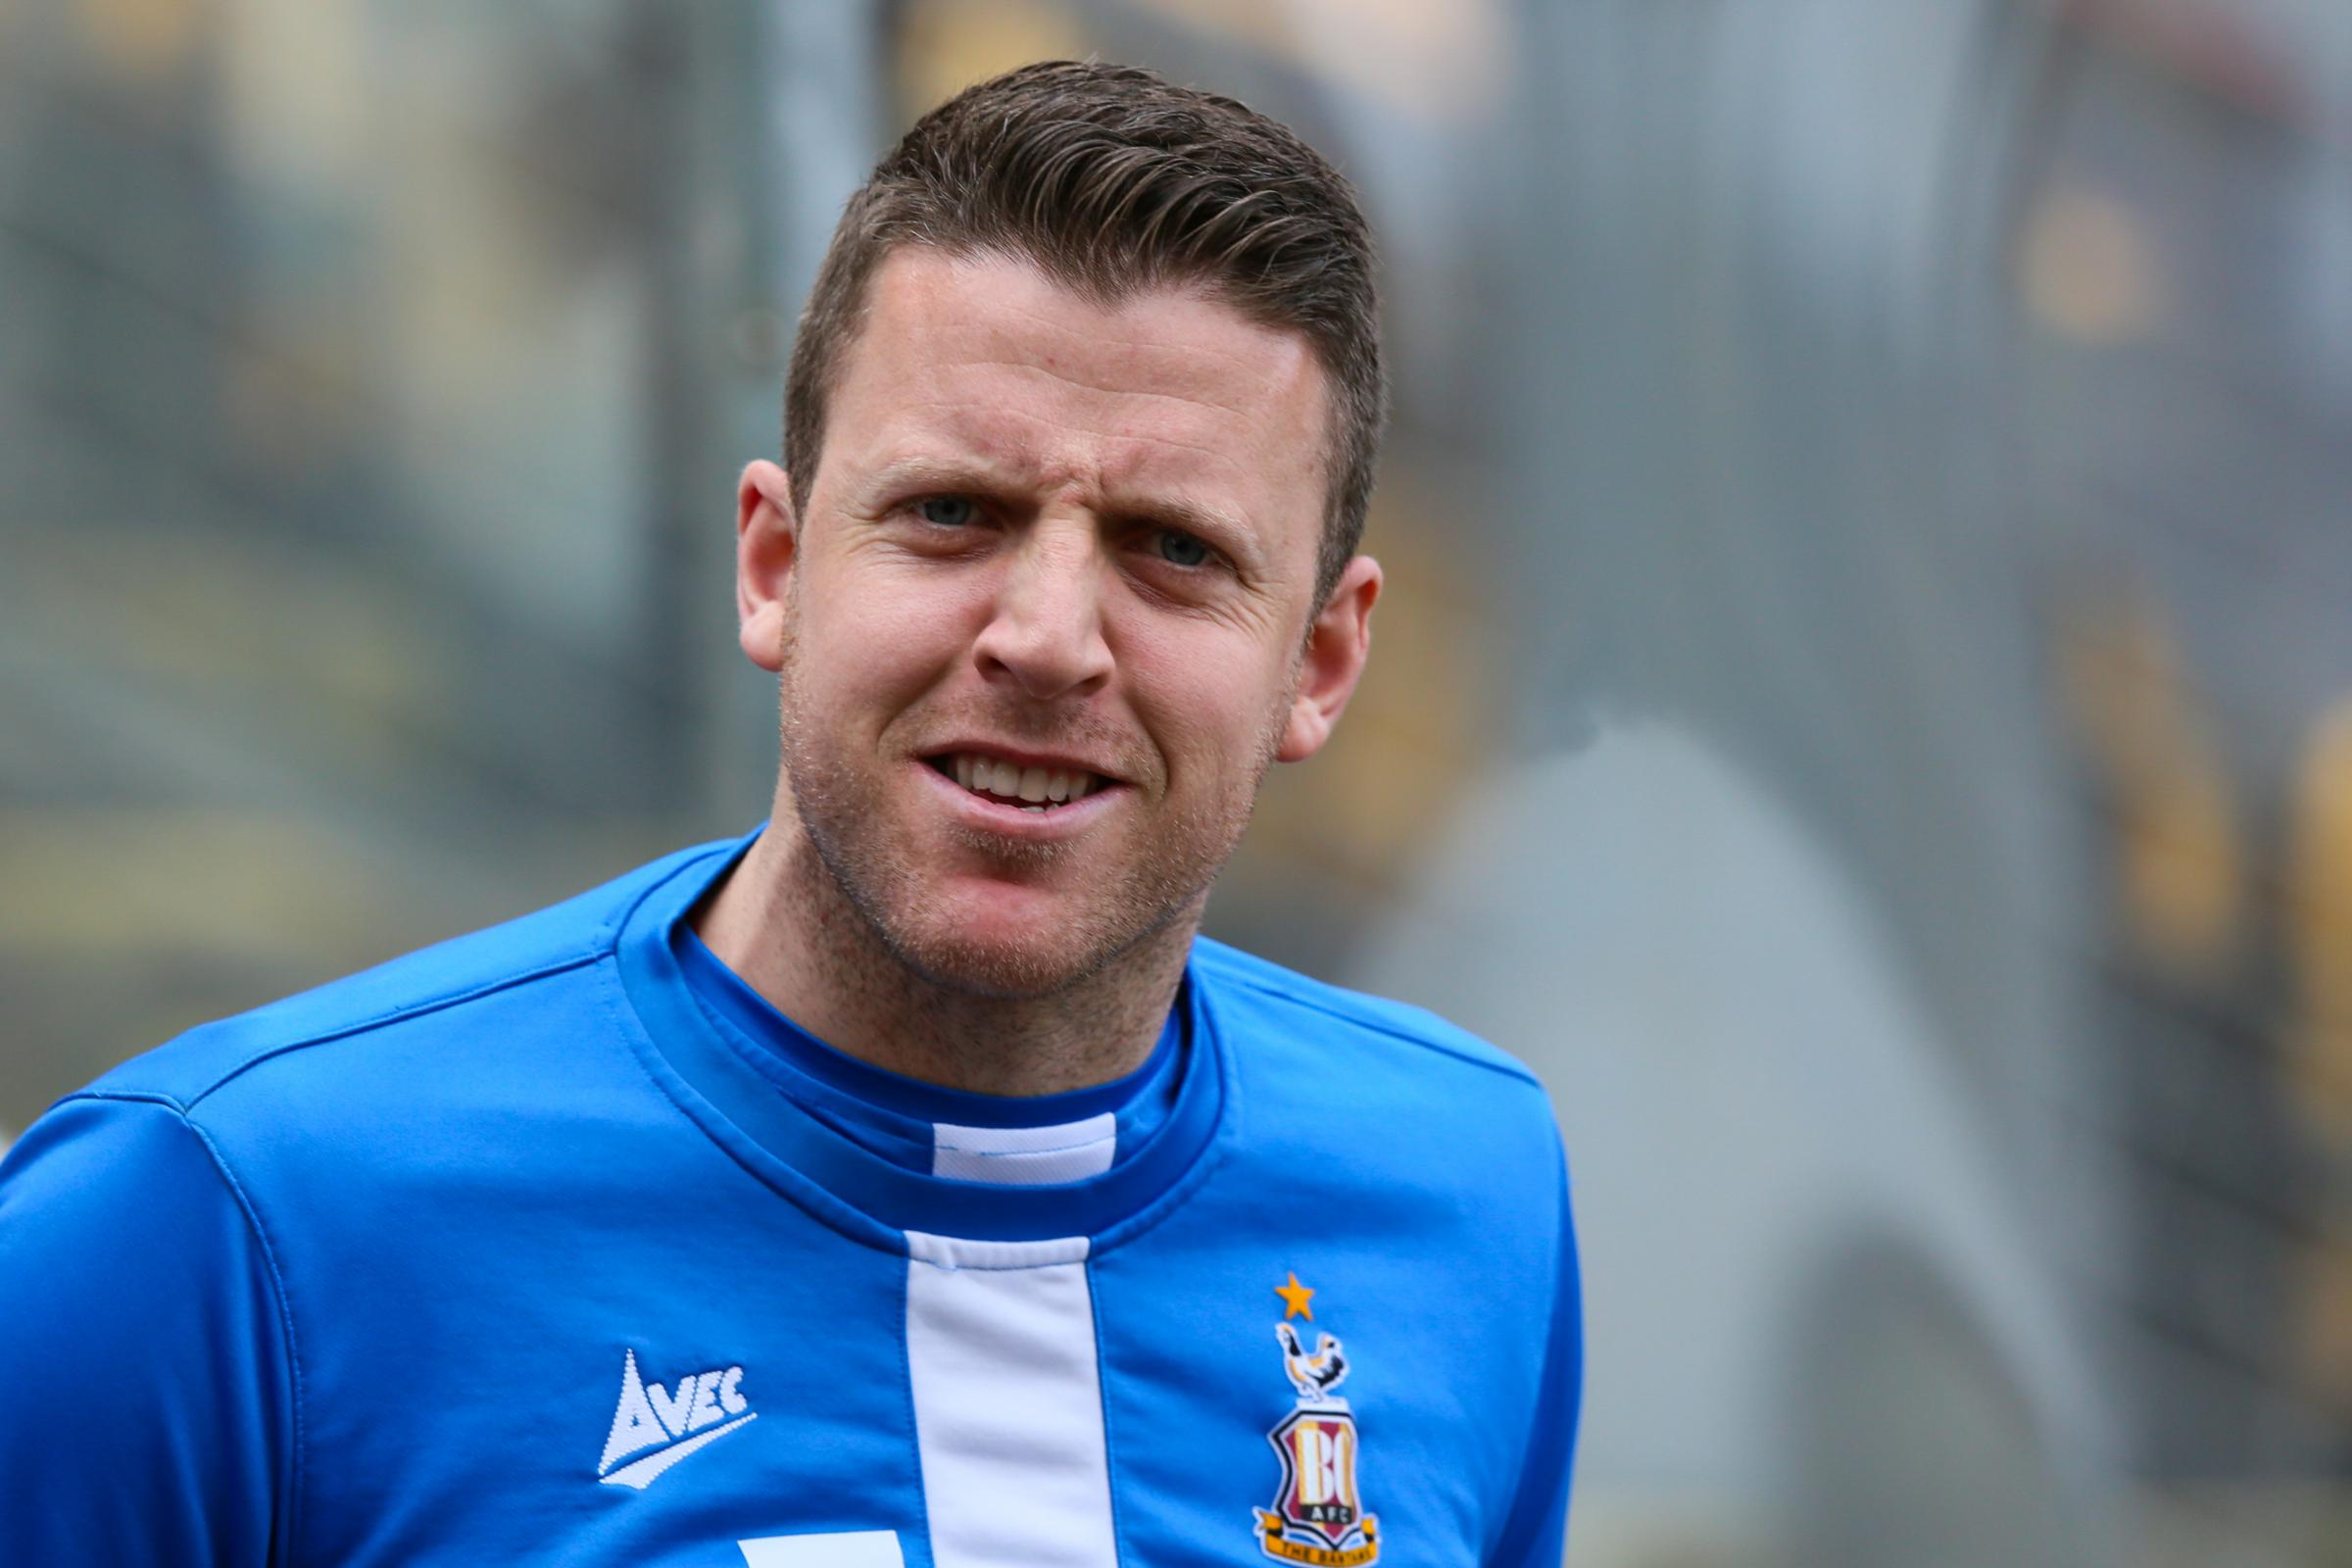 Colin Doyle is training with Portsmouth